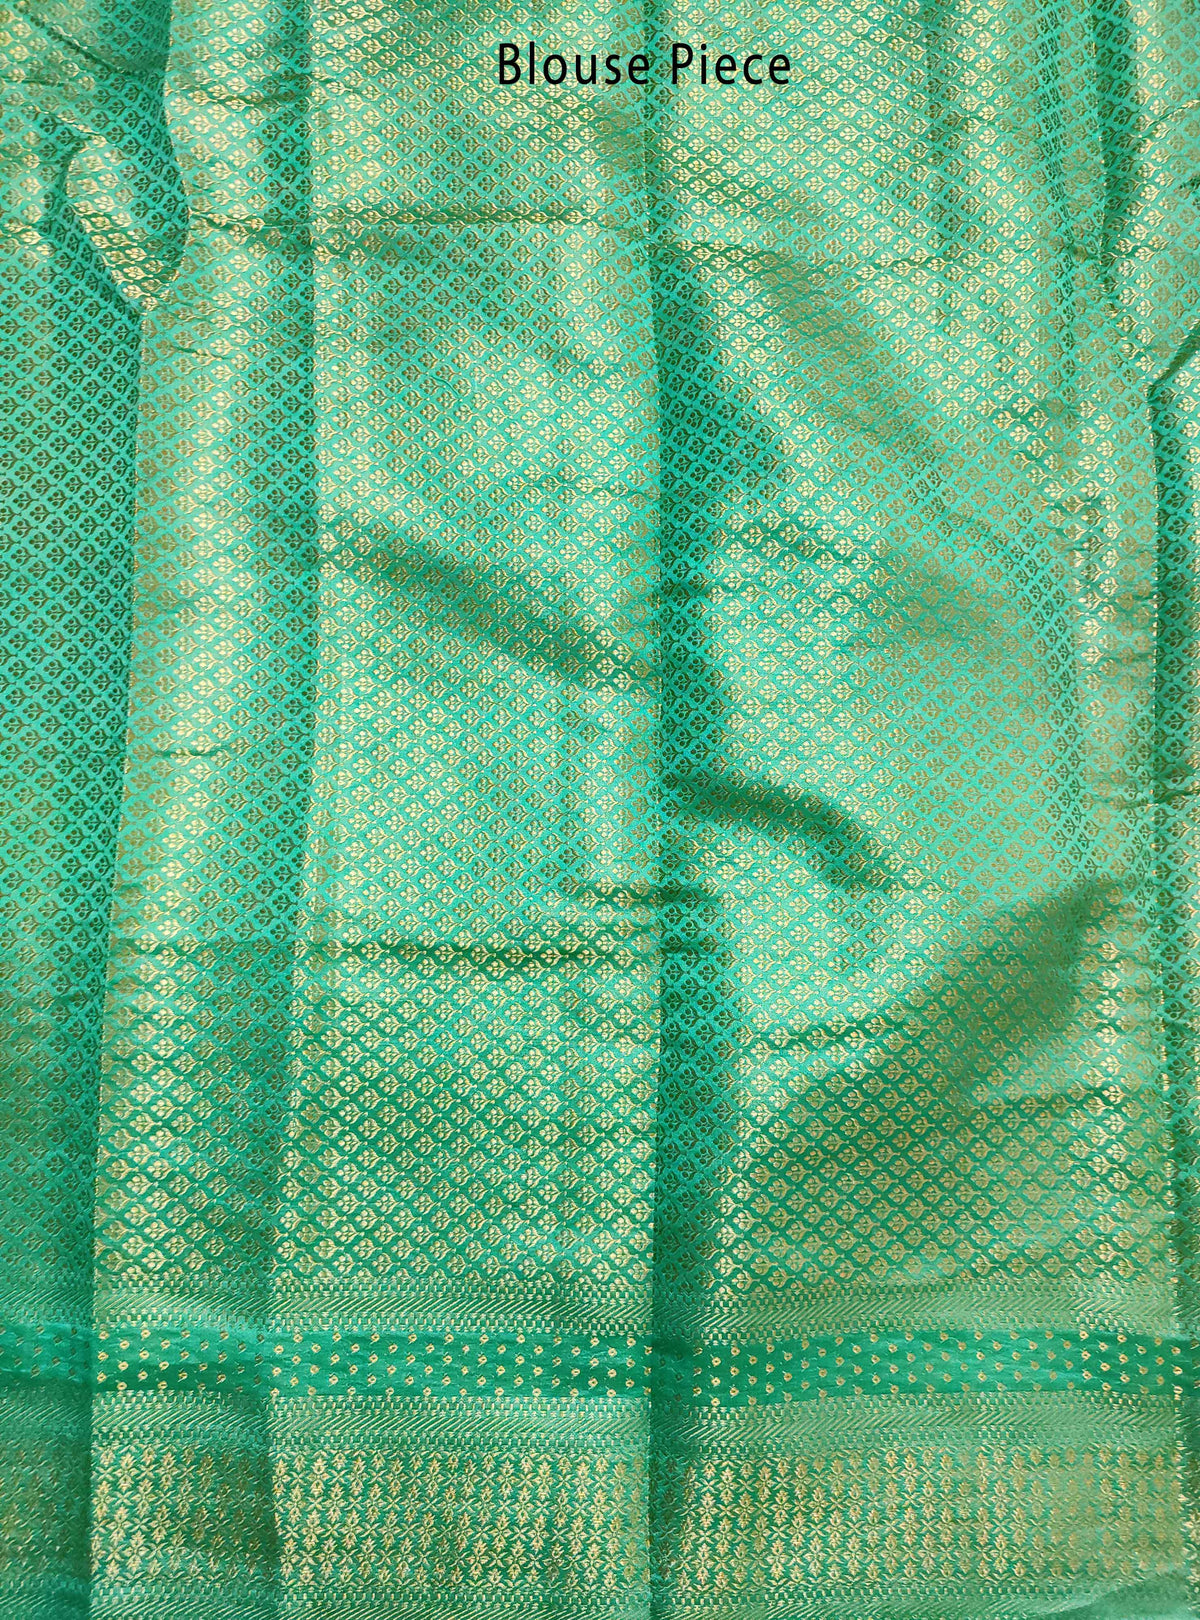 Teal Muga Chiniya silk Banarasi saree with meenedar flower jaal (5) Blouse Piece